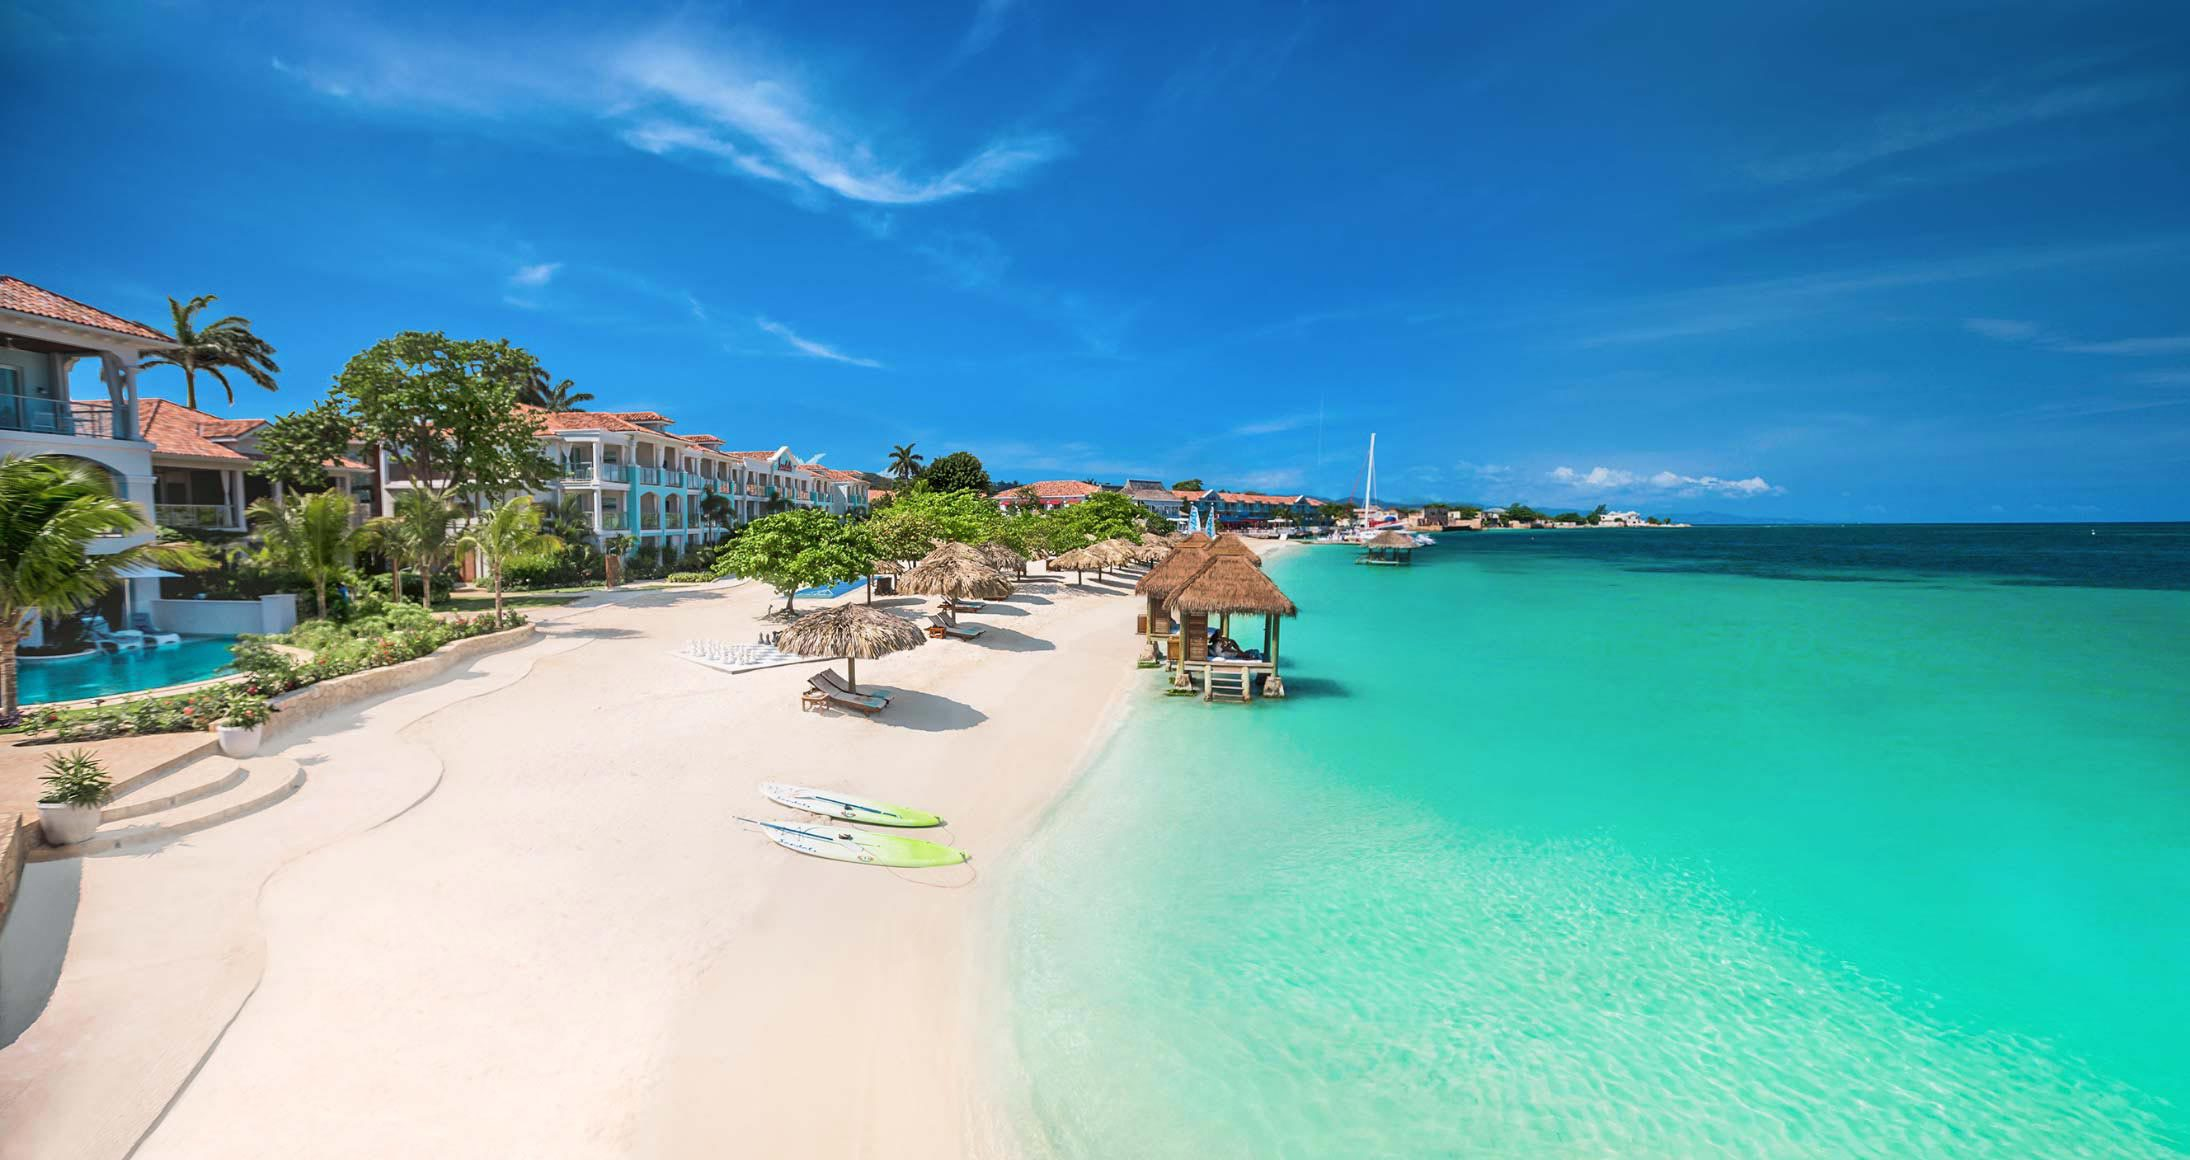 089b5e2c16fd Sandals Montego Bay All Inclusive Resort in Jamaica